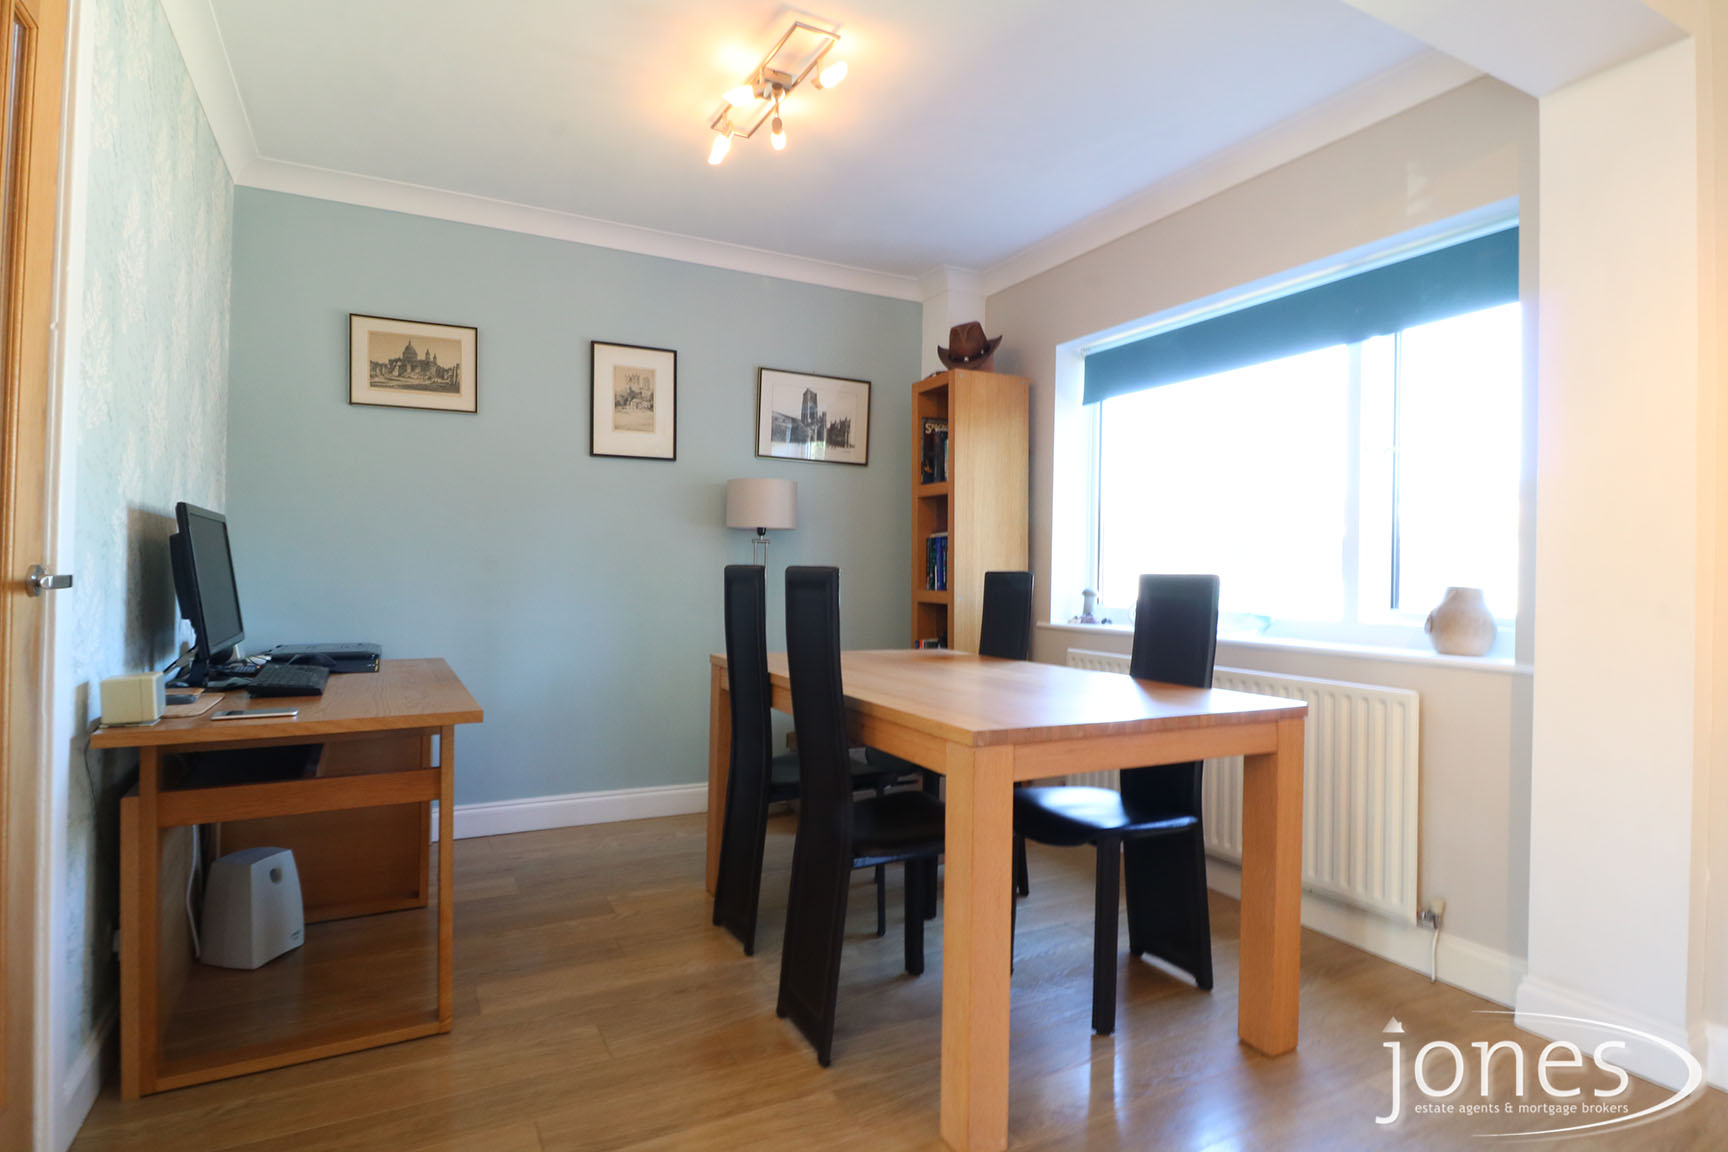 Home for Sale Let - Photo 03 Kielder Drive,Darlington,DL1 2BD